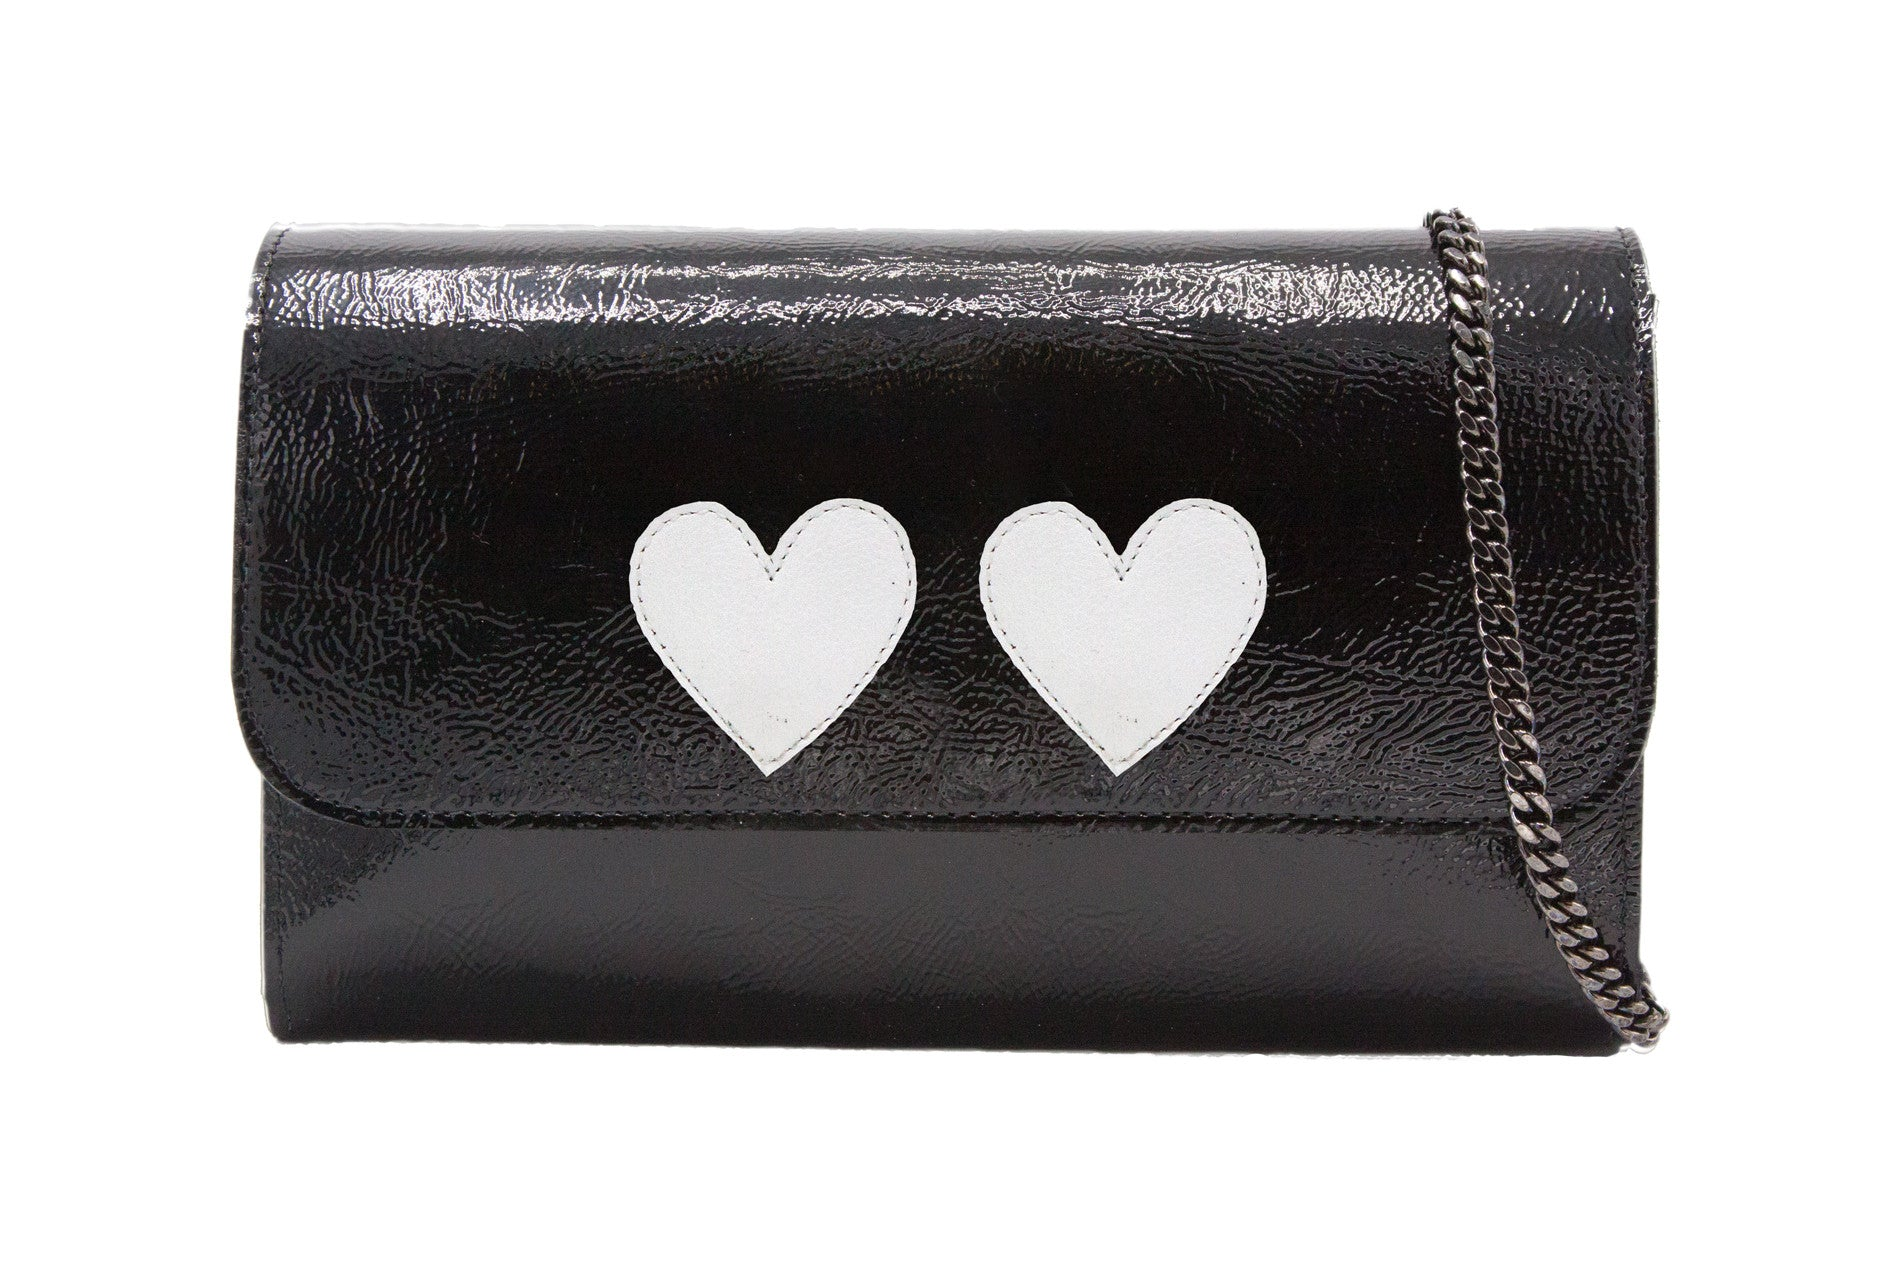 Mich Shoulder Bag Cracked Black Patent Leather w/ 2 White Heart